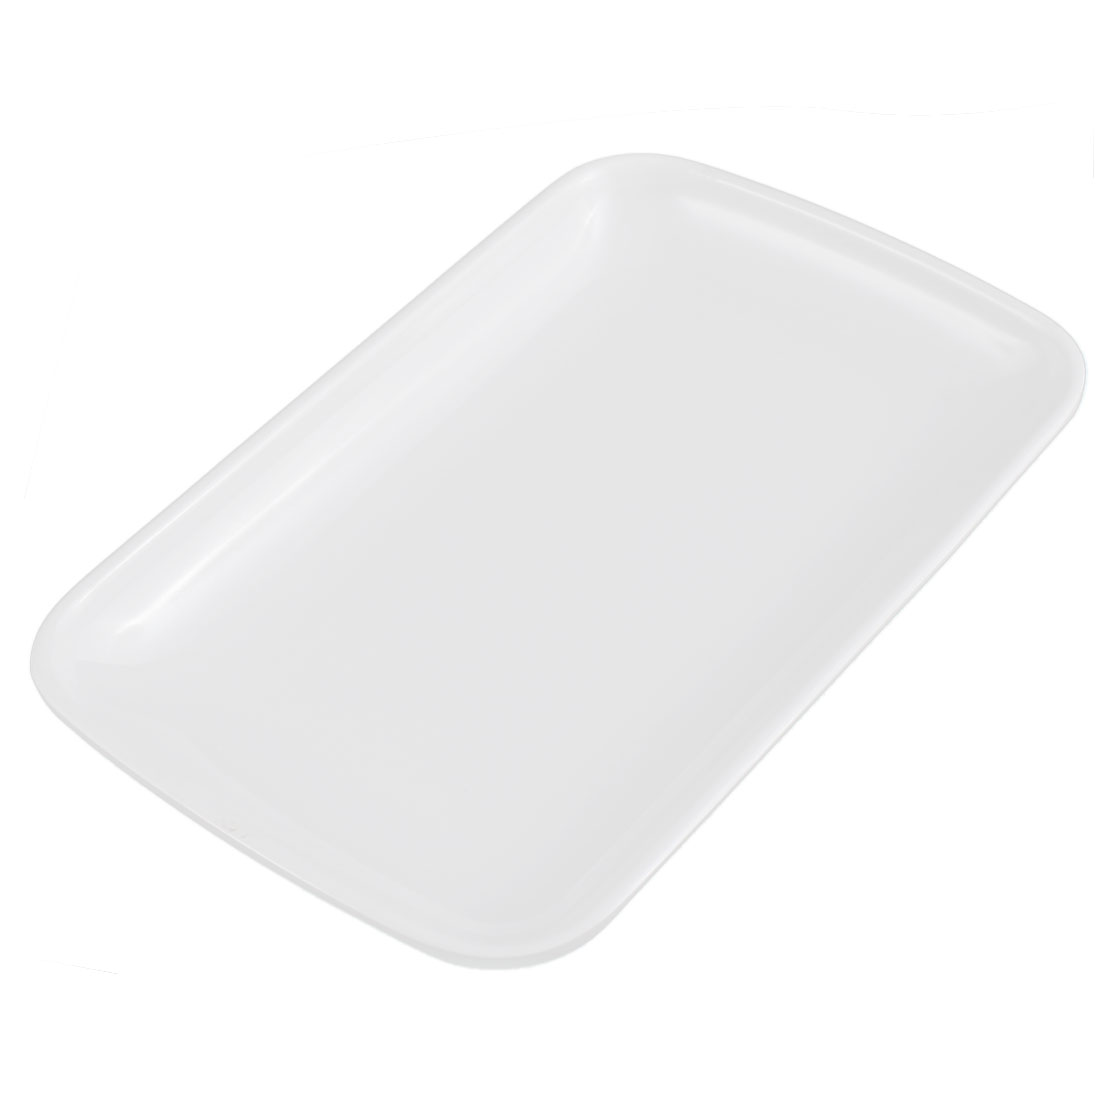 Home Kitchen Plastic Rectangle Design Vermicelli Food Plate Dish Container White